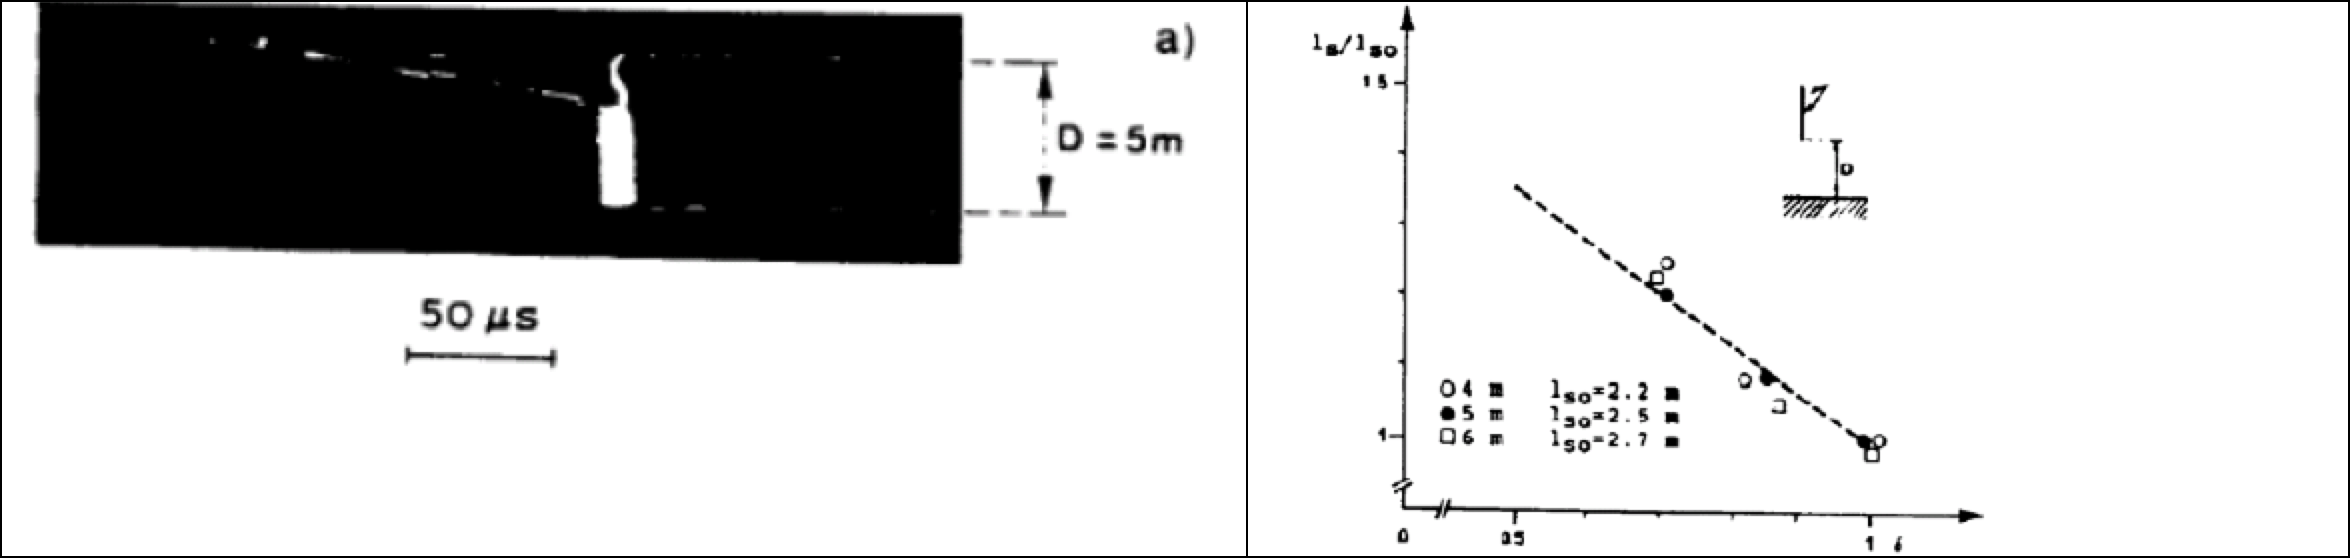 Fig. 2: Switching impulse of positive polarity. Discharge governed by streamers and leaders. Extension of the streamer phase as function of air density (measurements by image converter)  Dielectric Strength & Air Density Switching impulse of positive polarity